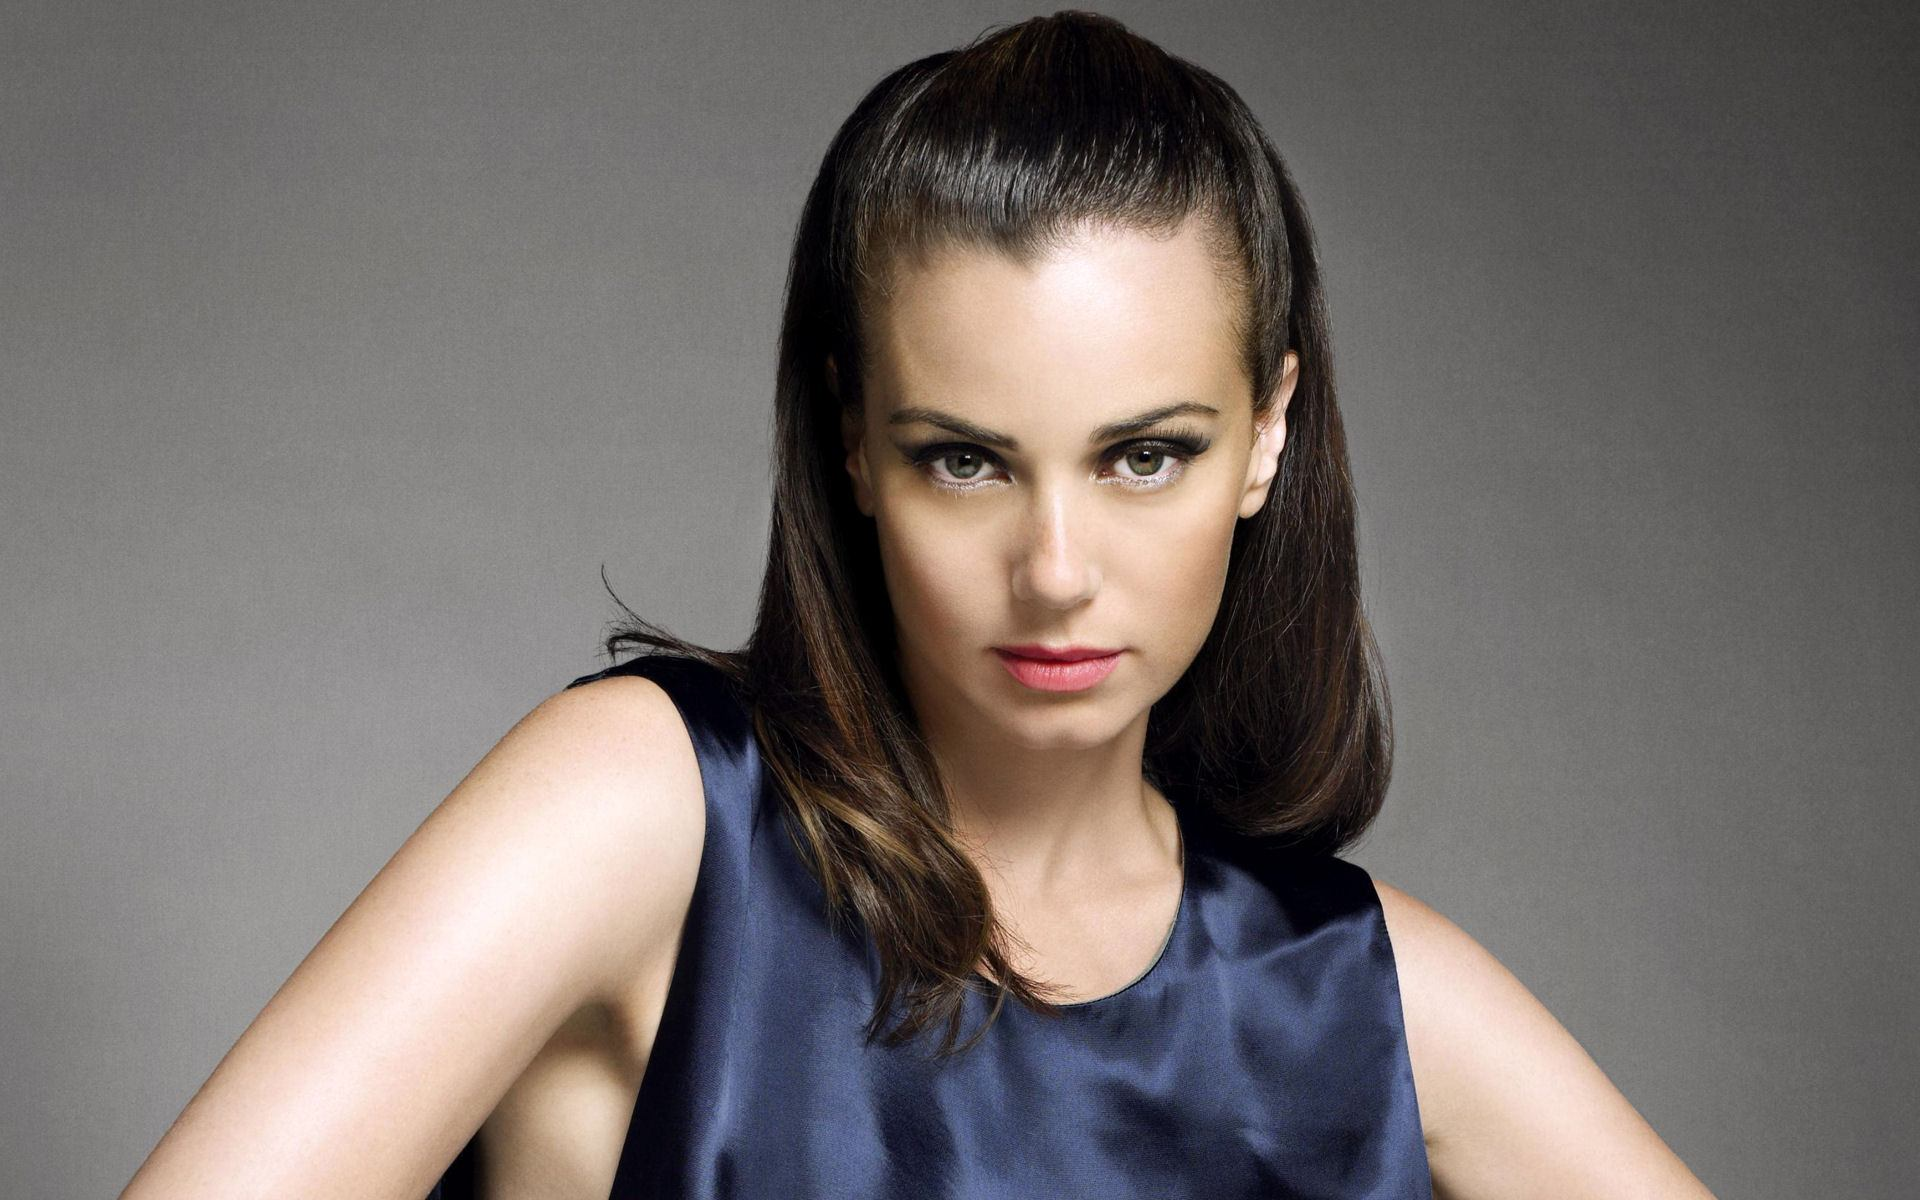 Mia-Kirshner Cute Jewish Girls - 30 Most Pretty Jewish Women in the World